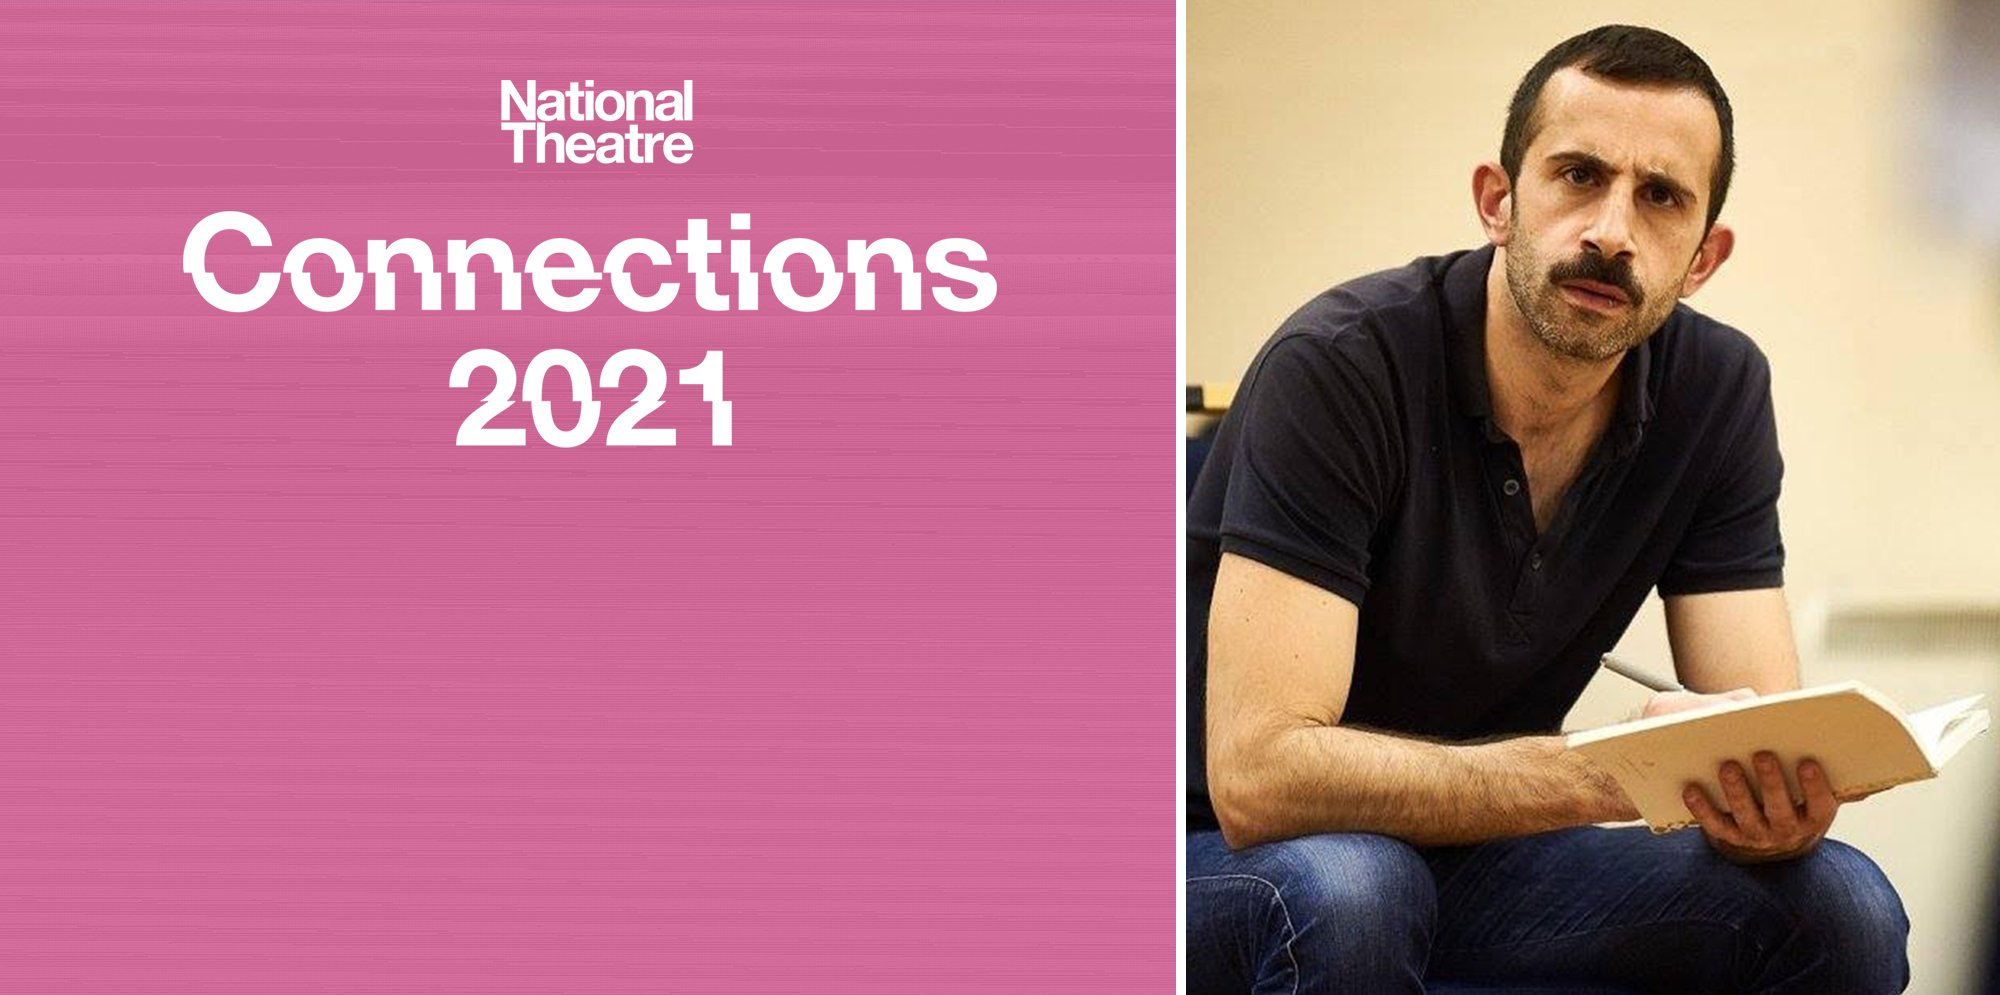 On the left side of the image, a white NT Connections logo is on a pink background. On the right is a picture of Brian Mullin, a white man with short dark hair. He has a notebook and pen in his hands and is looking thoughtfully at something off screen.